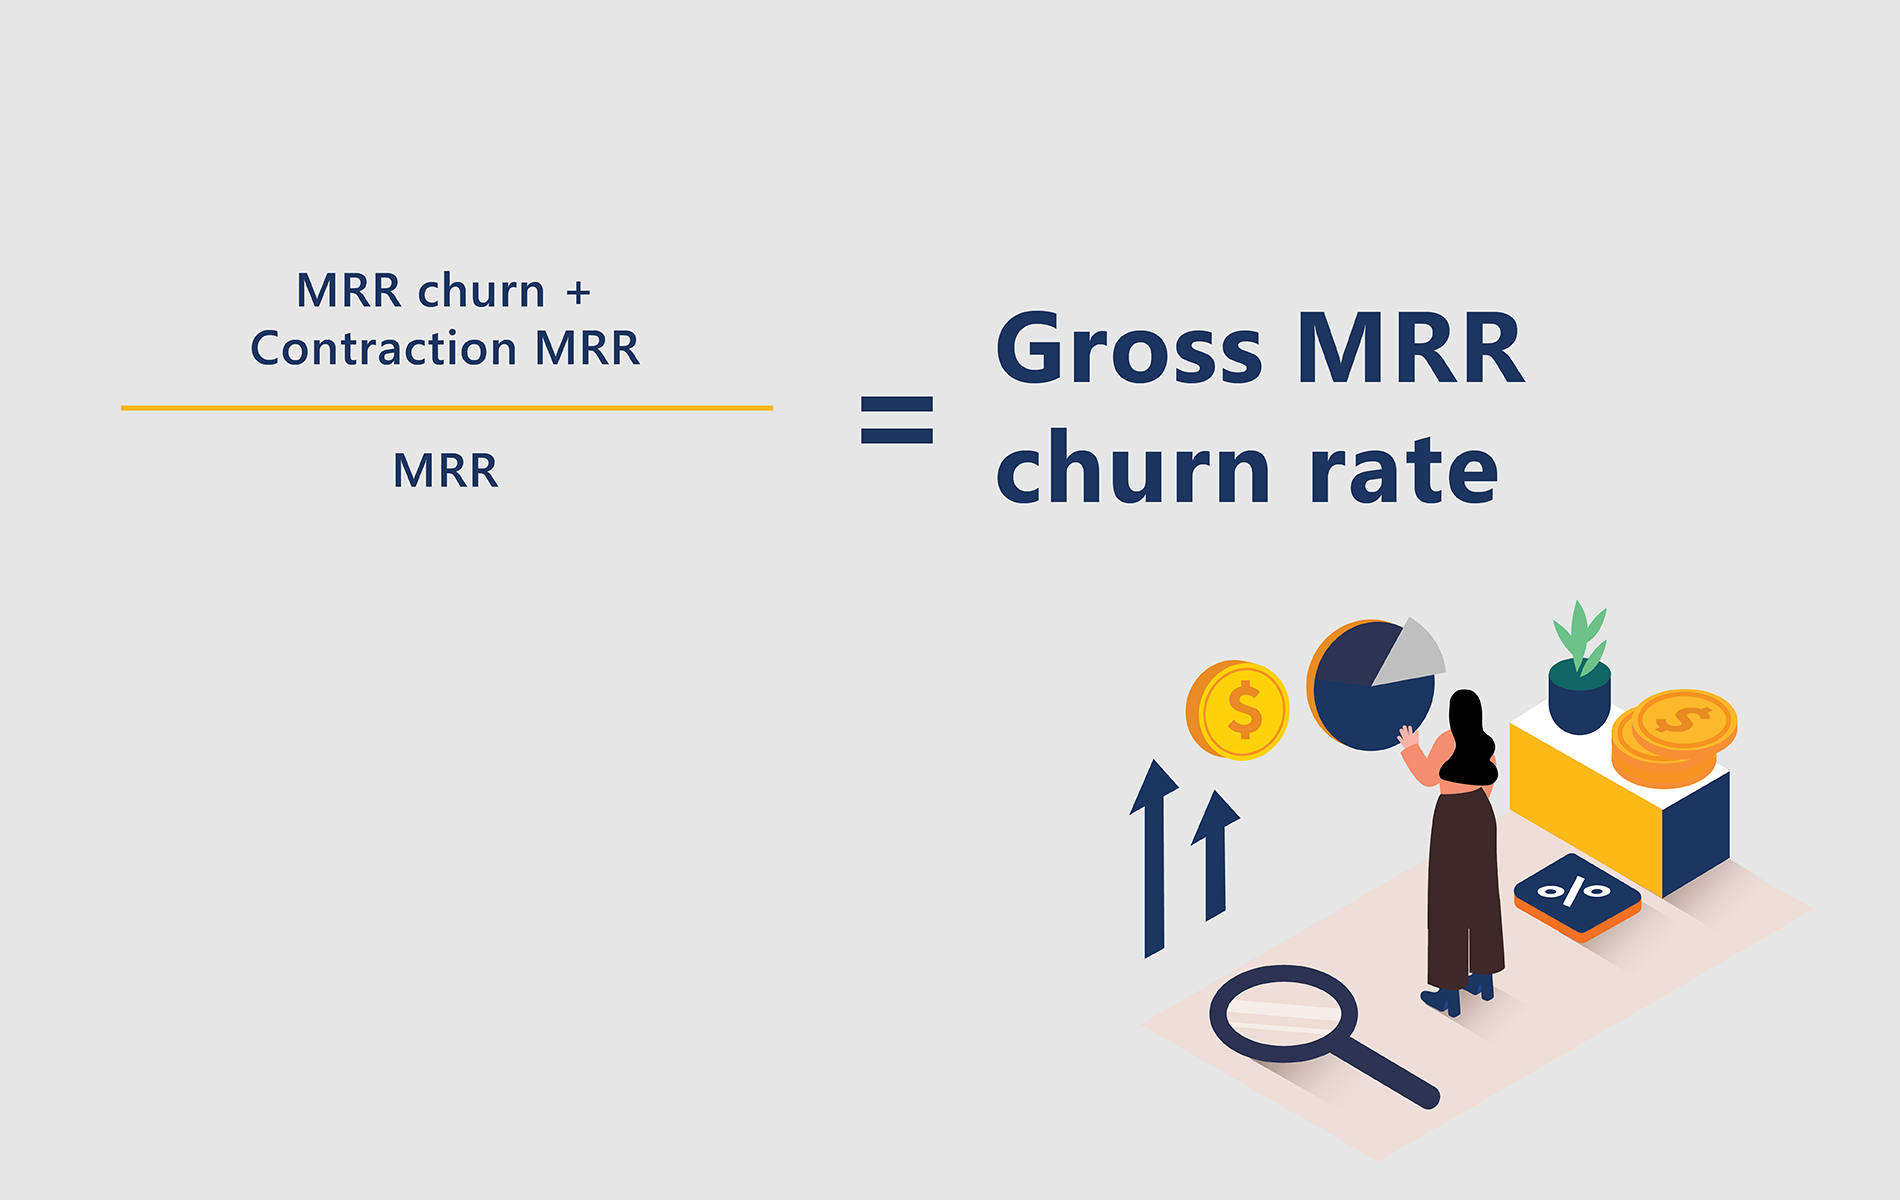 Subscriber churn metrics – gross MRR churn rate